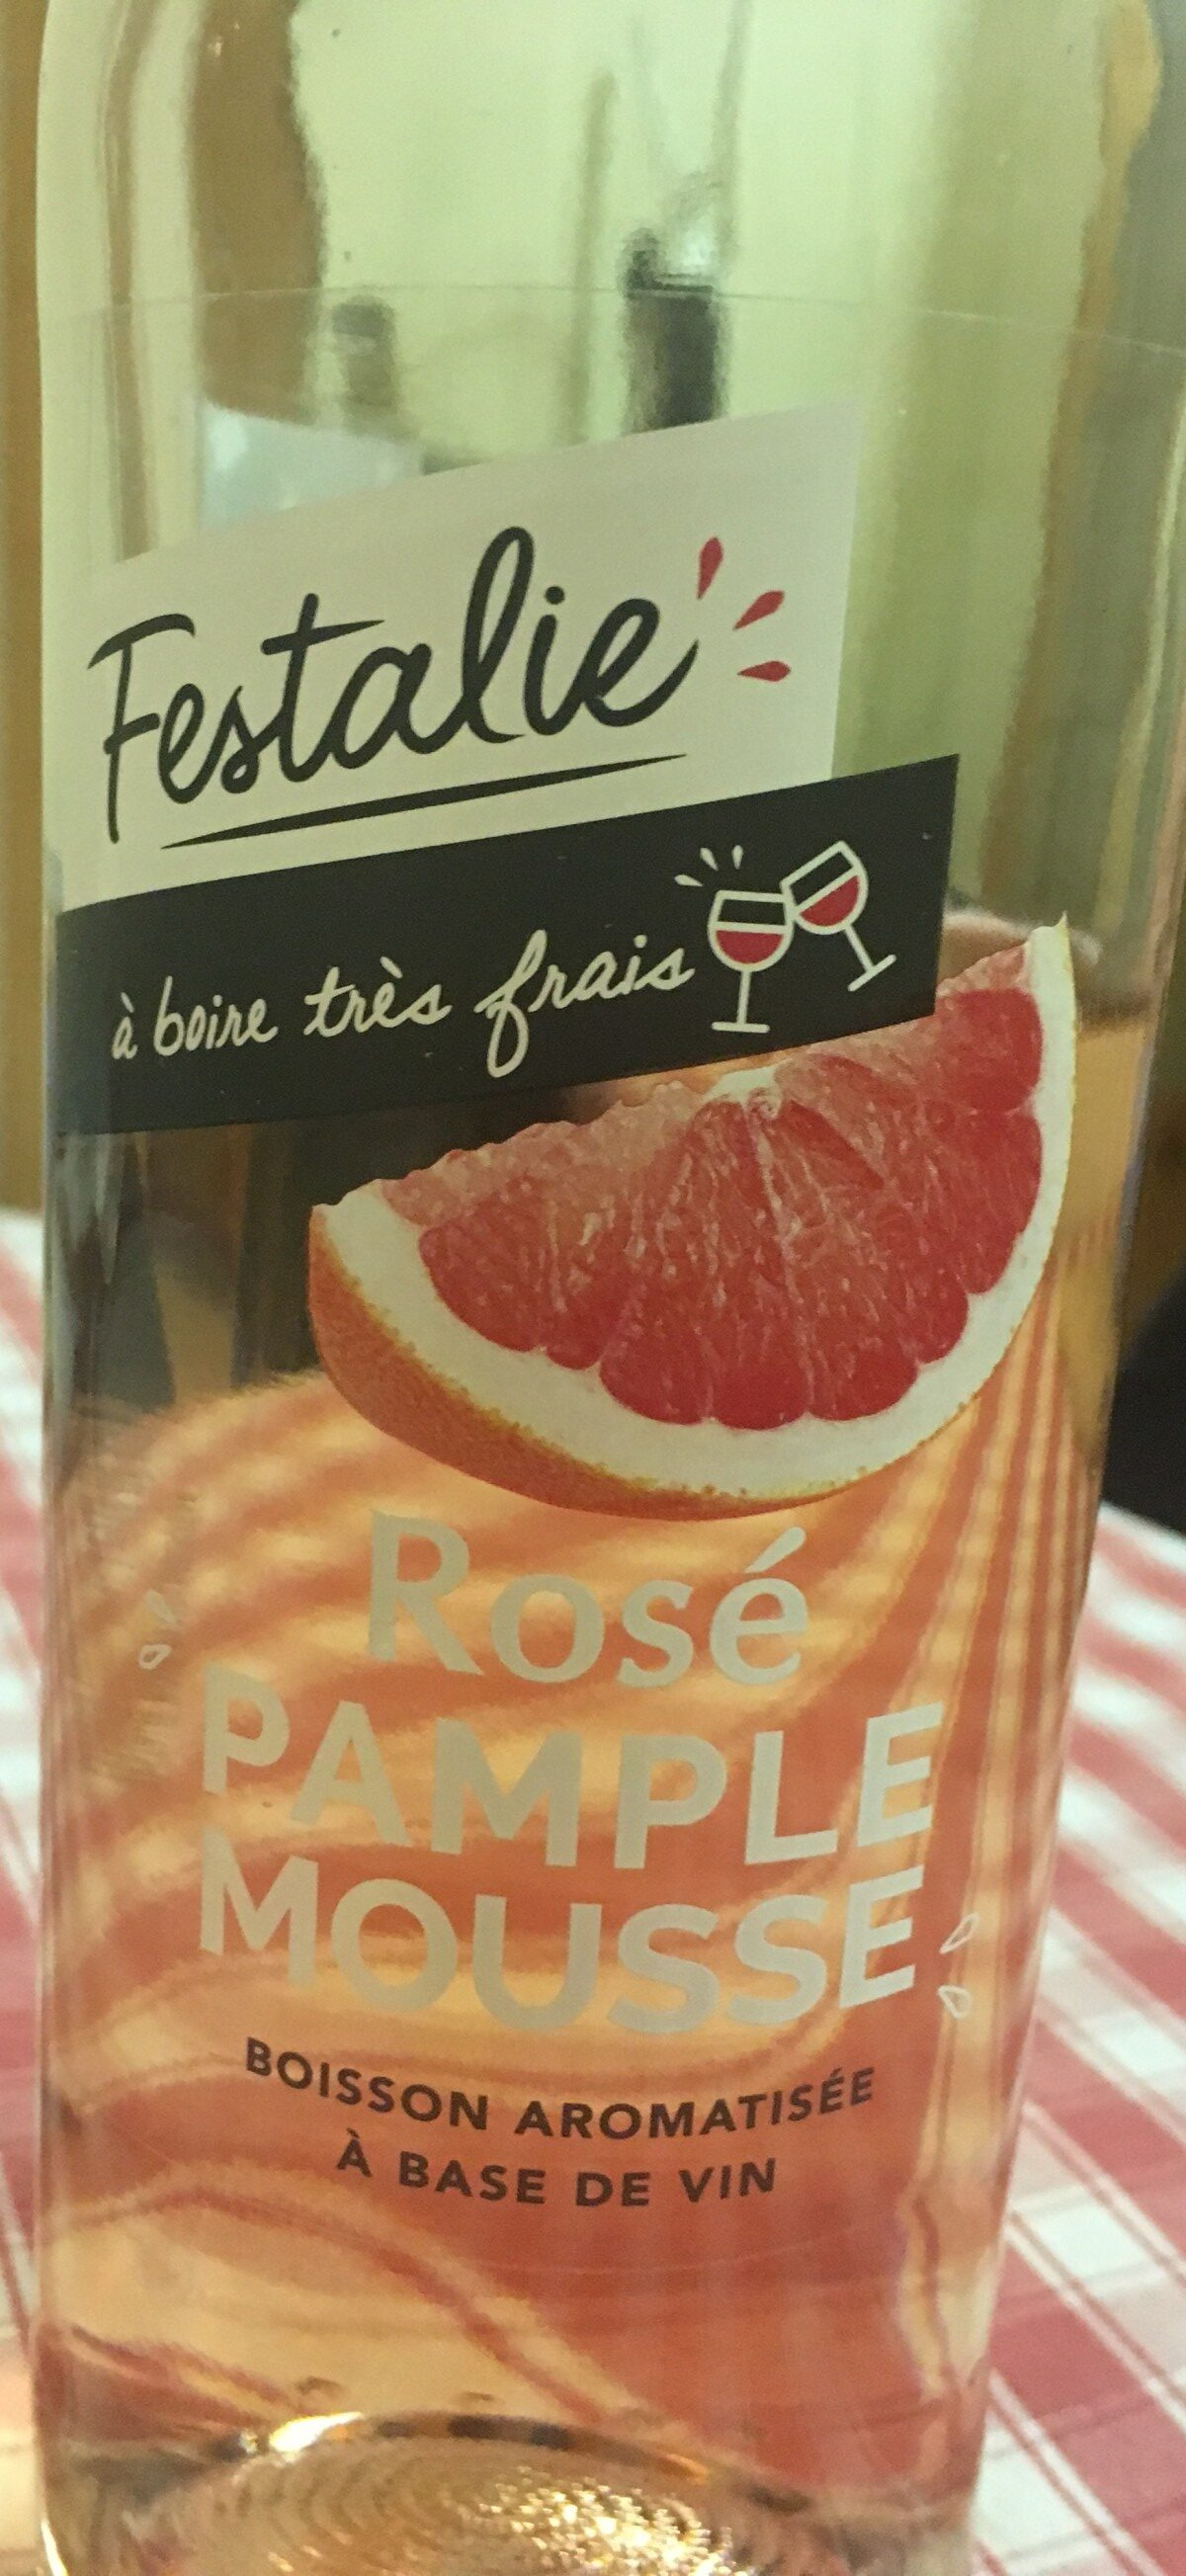 Rosé pamplemouse - Ingredients - fr